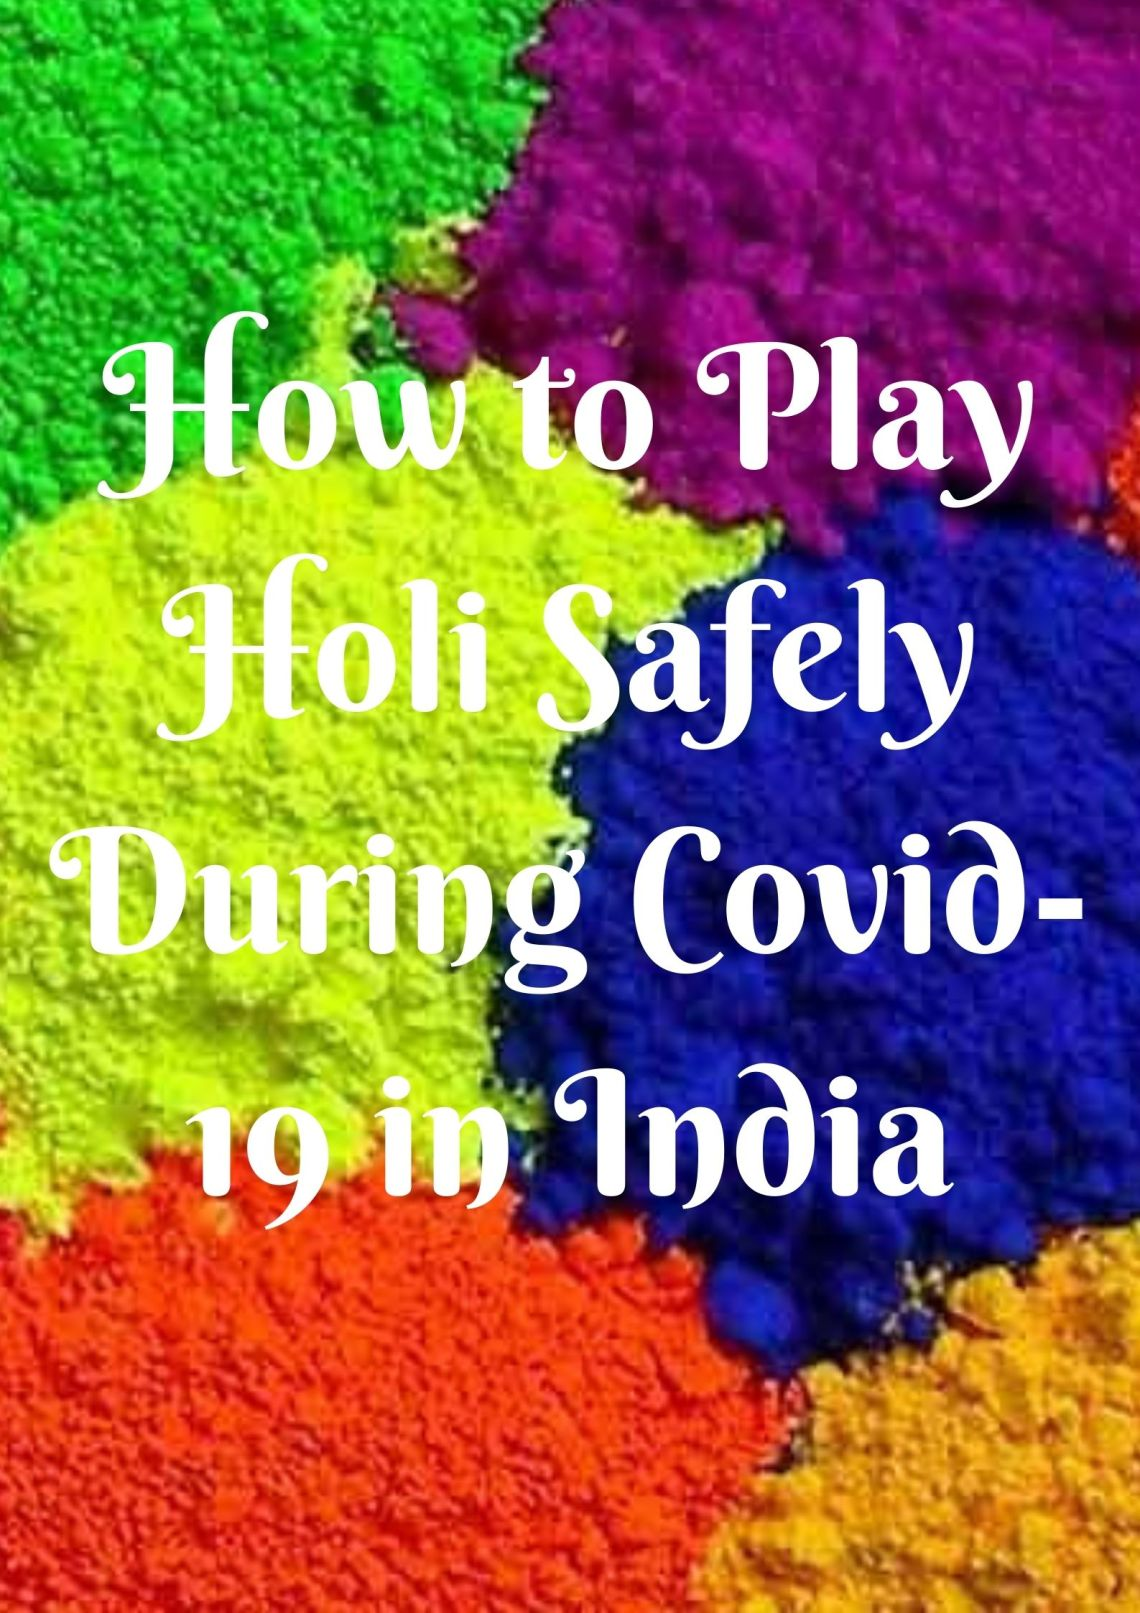 How to play Holi safely during Covid-19 in India